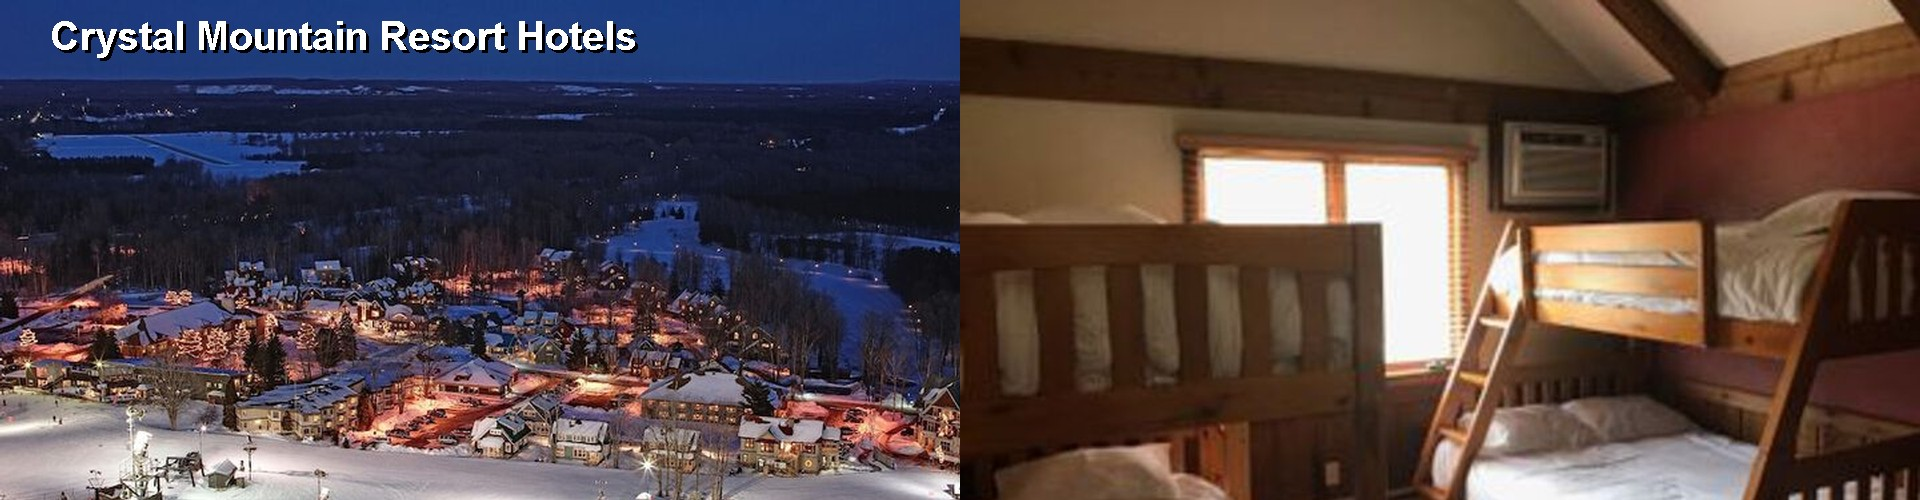 5 Best Hotels near Crystal Mountain Resort